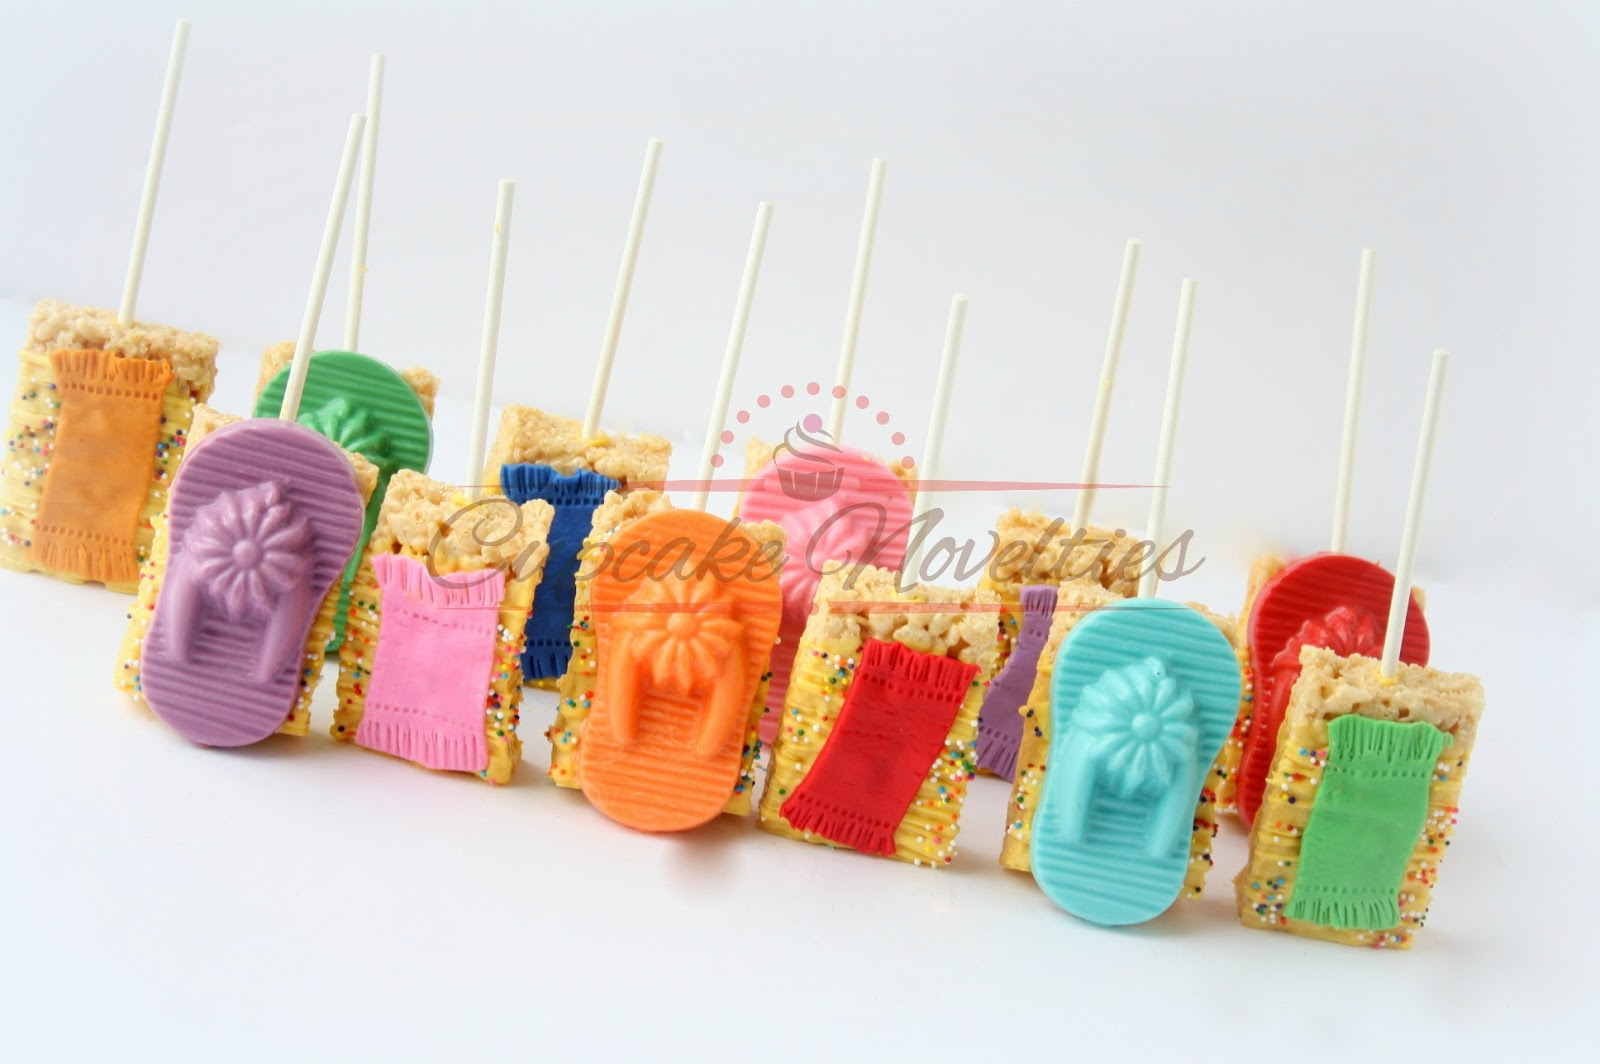 421cacf64e8f These delicious Rice Krispie treats are perfect for Pool Party favors